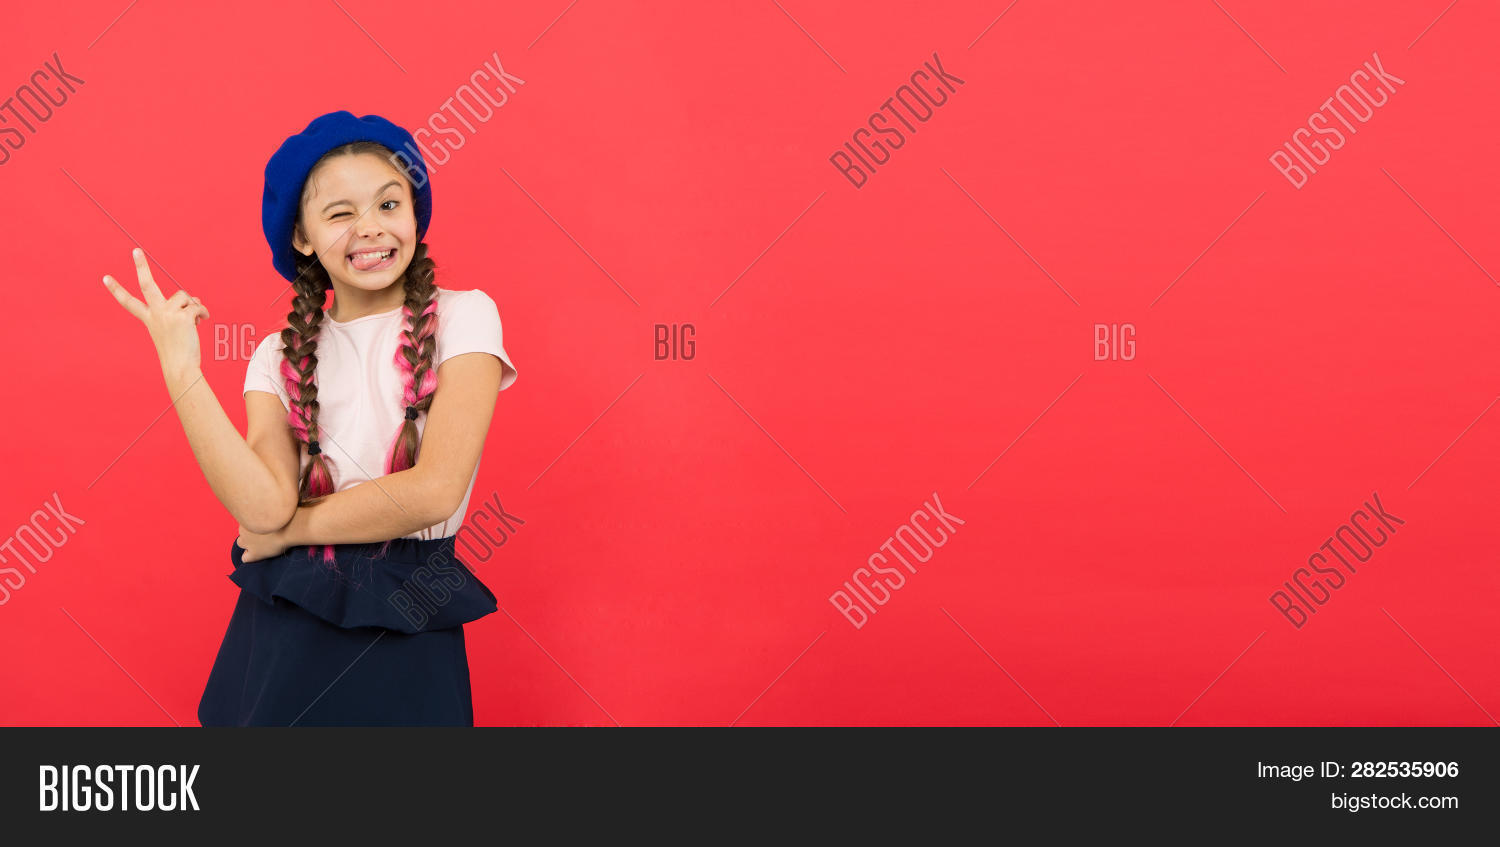 accessory,adorable,advertisement,attribute,baby,background,beret,braid,caucasian,cheerful,child,childhood,clothes,clothing,copy,cute,expression,face,fashion,fashionable,french,fun,girl,happiness,happy,hat,having,holidays,inspiration,just,kid,little,long,posing,red,schoolgirl,season,small,smile,smiling,space,summer,teenage,wear